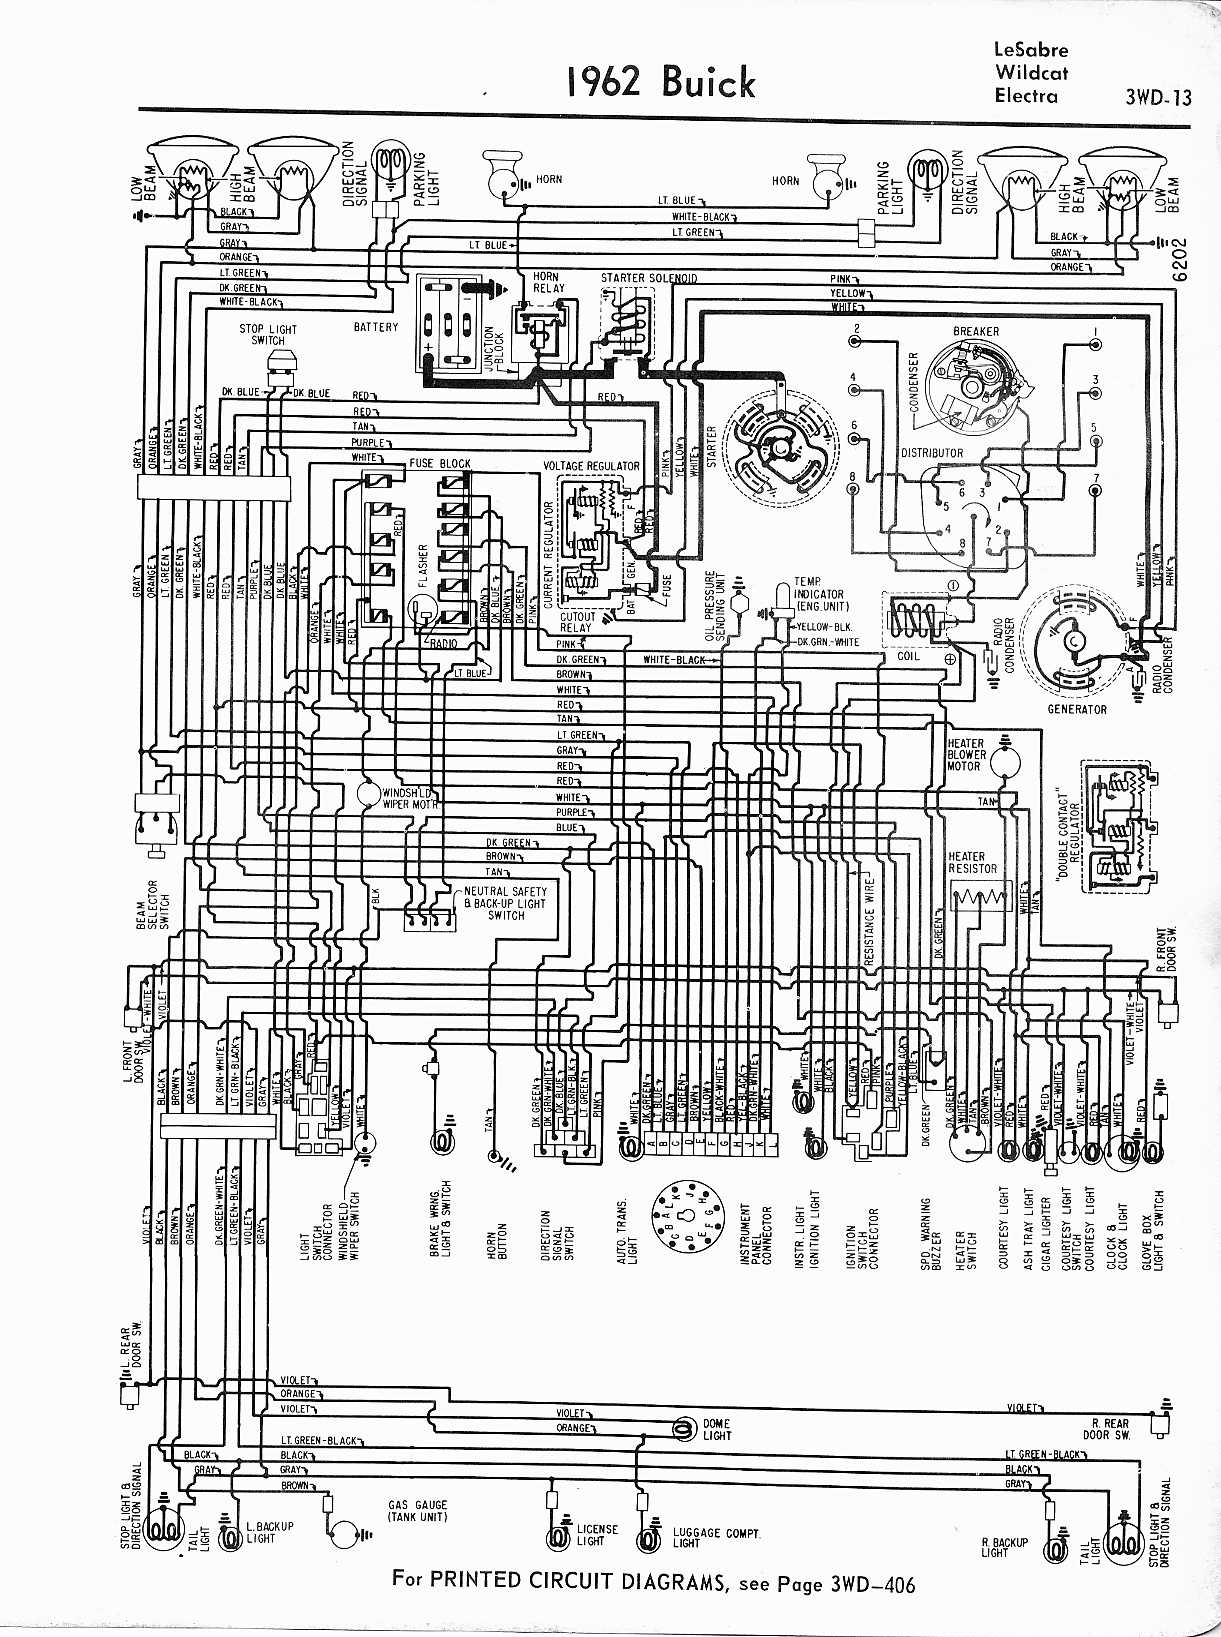 1967 Buick Skylark Fuse Box Diagram List Of Schematic Circuit 1998 Buick  LeSabre Fuse Map 1967 Buick Skylark Fuse Box Diagram